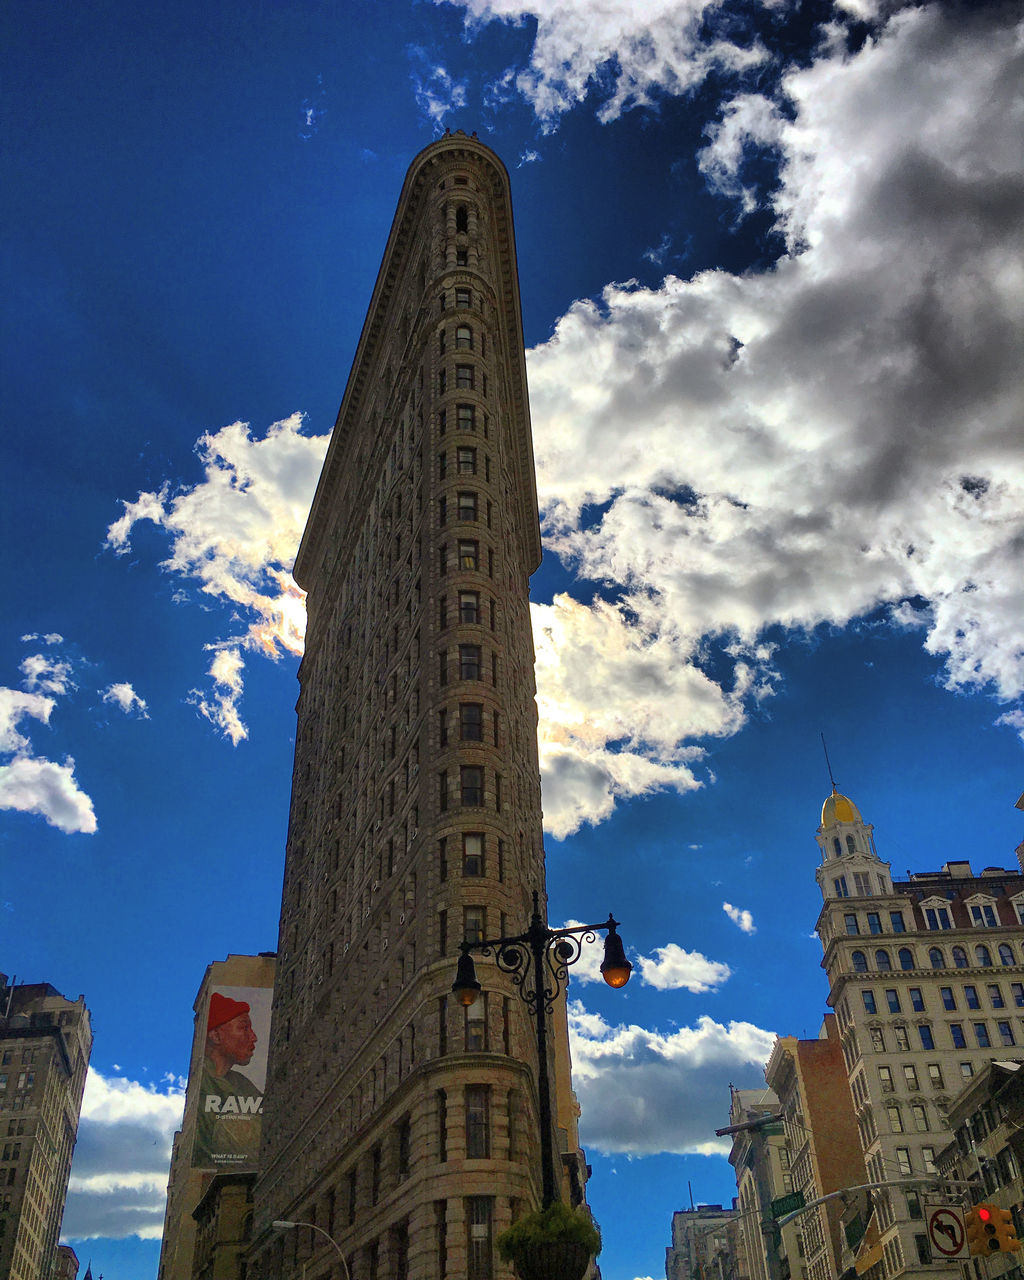 sky, architecture, low angle view, cloud - sky, building exterior, built structure, outdoors, day, city, blue, no people